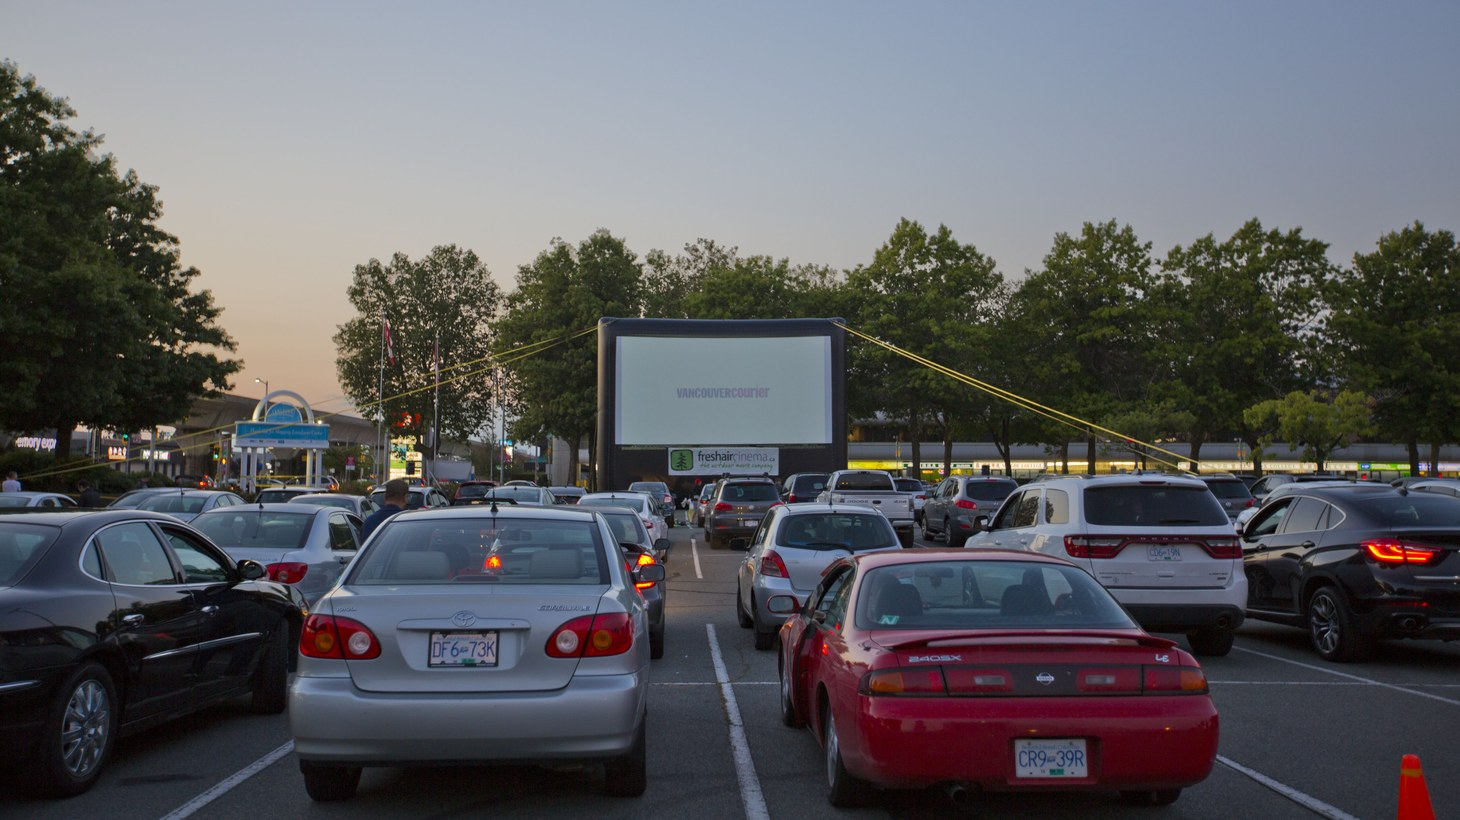 Drive-in movie theaters are making a comeback during the COVID-19 pandemic.